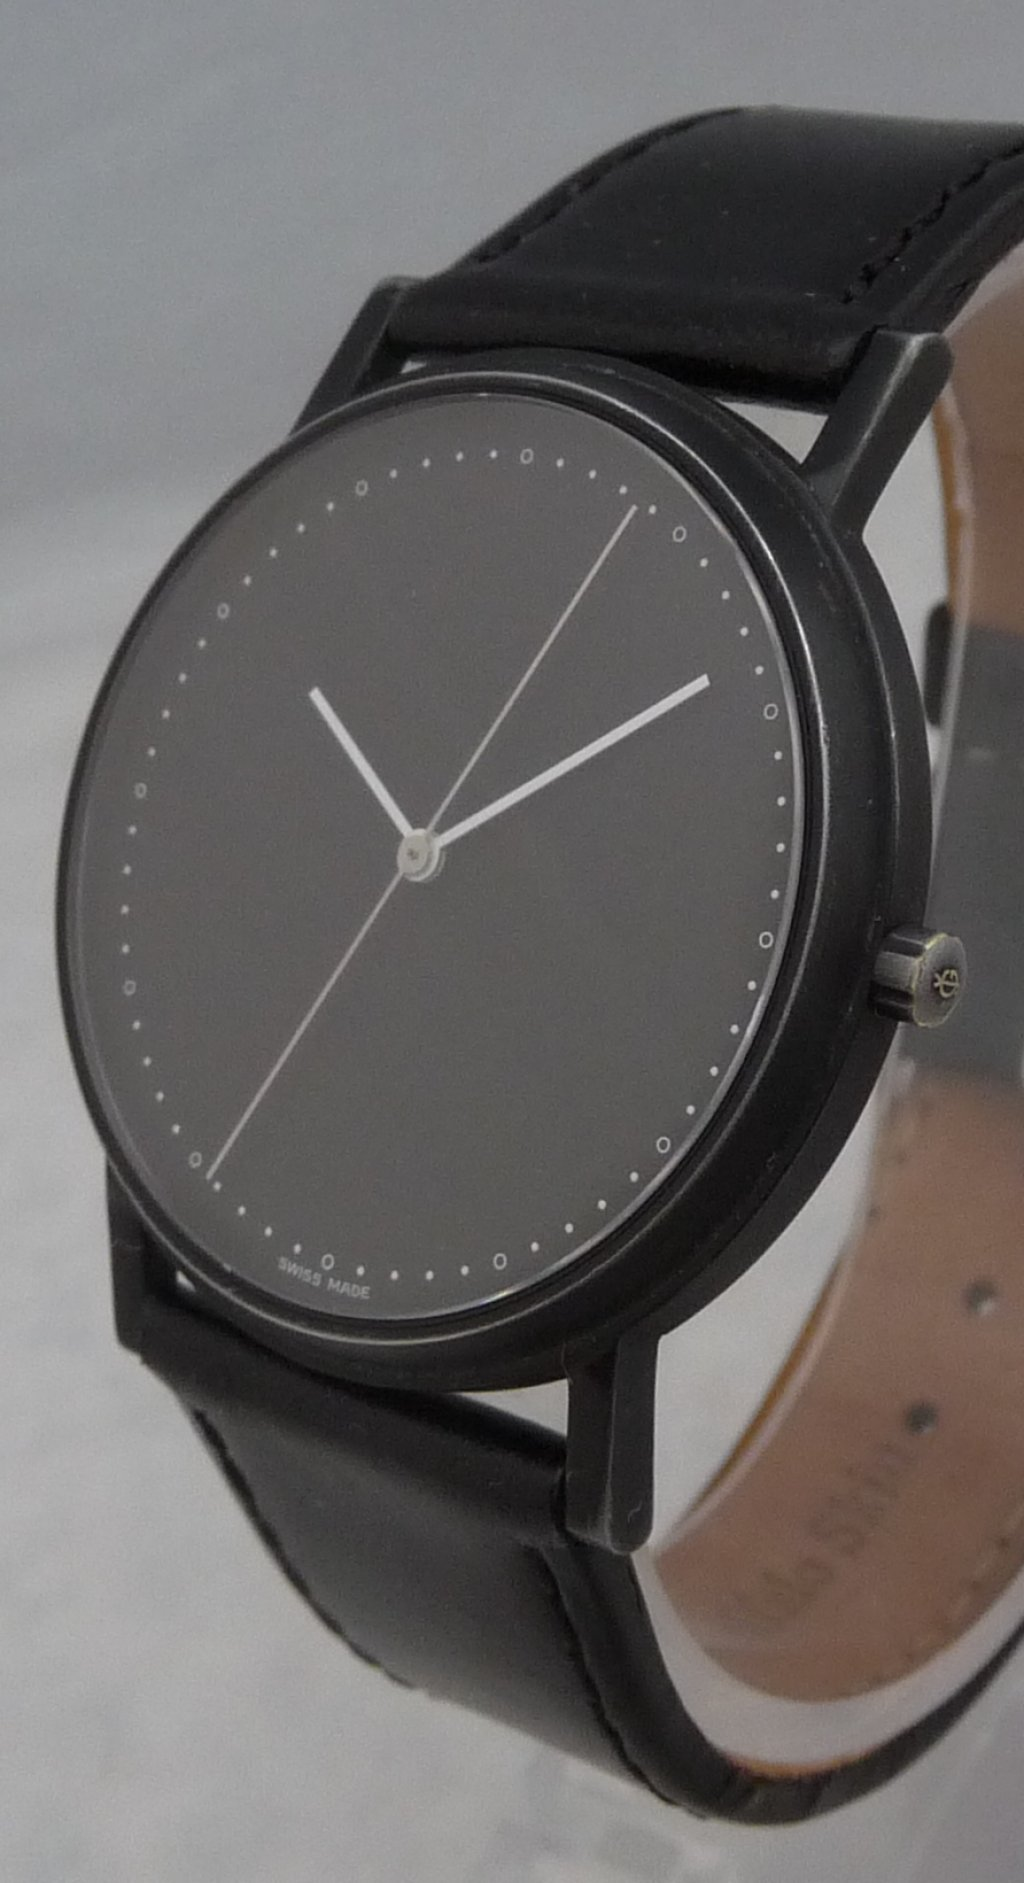 Guaranteed To Be As Described And Satisfaction This Is A Very Nice Georg Jensen Watch It The Denmark Design Number 345 Vintage